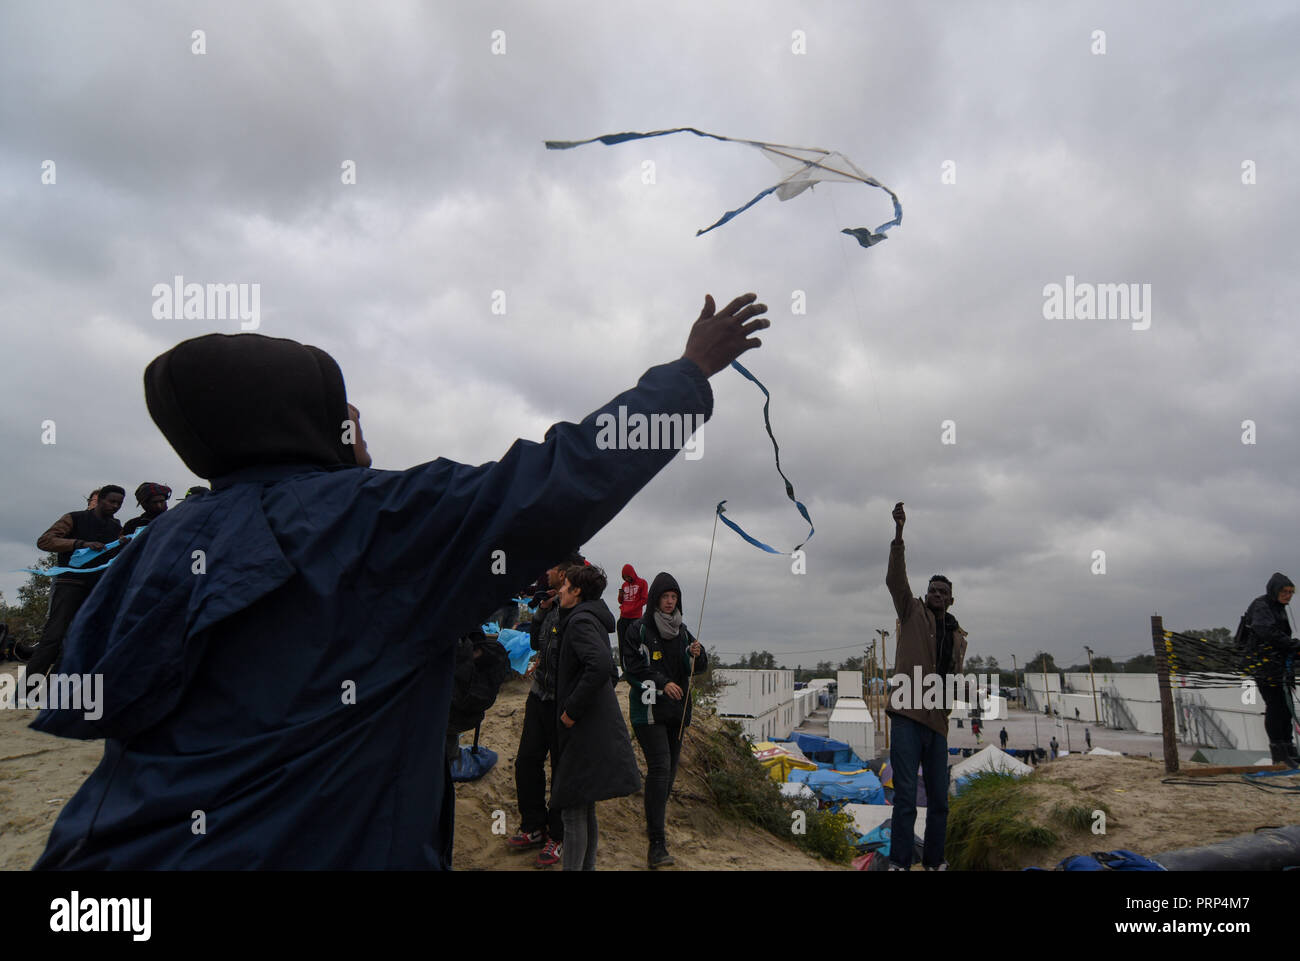 October 12, 2016 - Calais, France: Migrants play with kites in the Calais 'jungle' migrant camp. Scene de vie quotidienne dans la jungle de Calais, l'un des plus grands camps de migrants au monde. *** FRANCE OUT / NO SALES TO FRENCH MEDIA *** Stock Photo